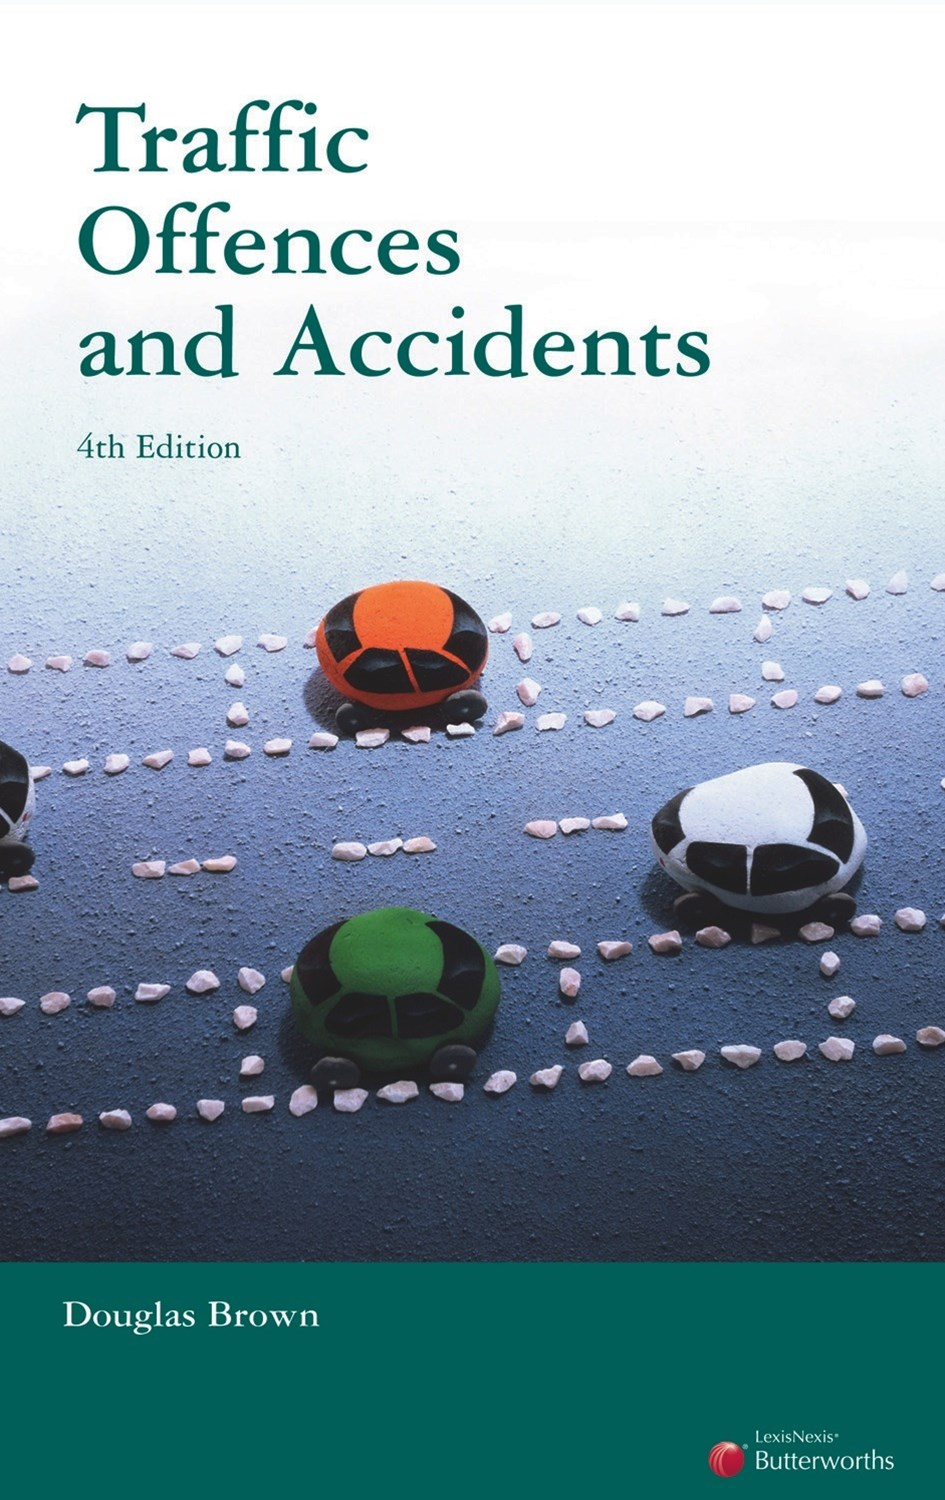 Traffic Offences and Accidents